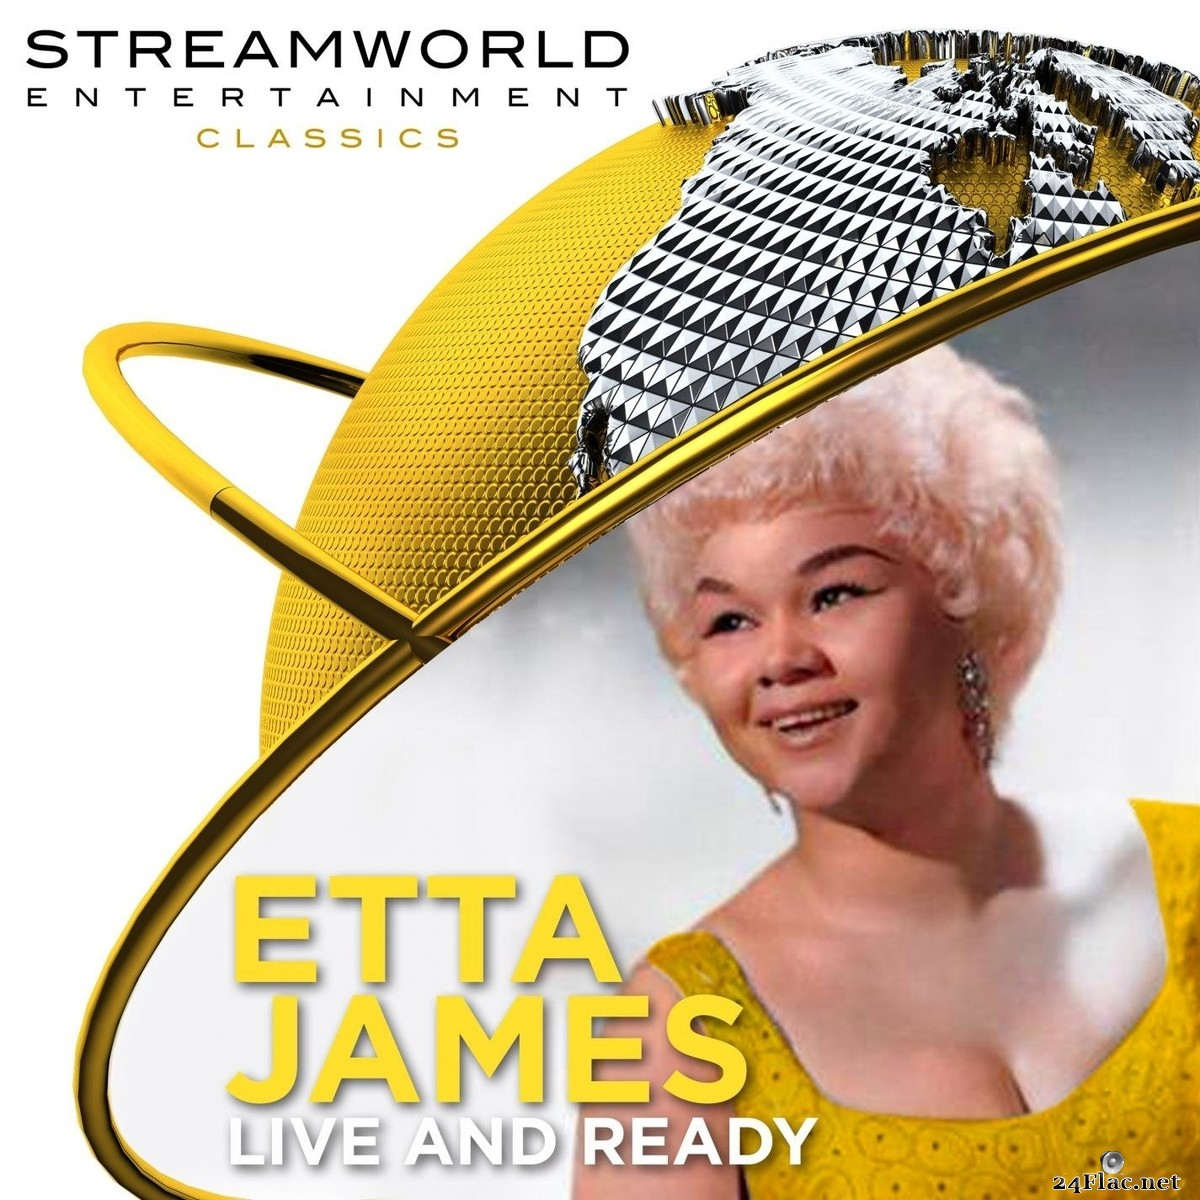 Etta James - Etta James Live And Ready (2021) FLAC